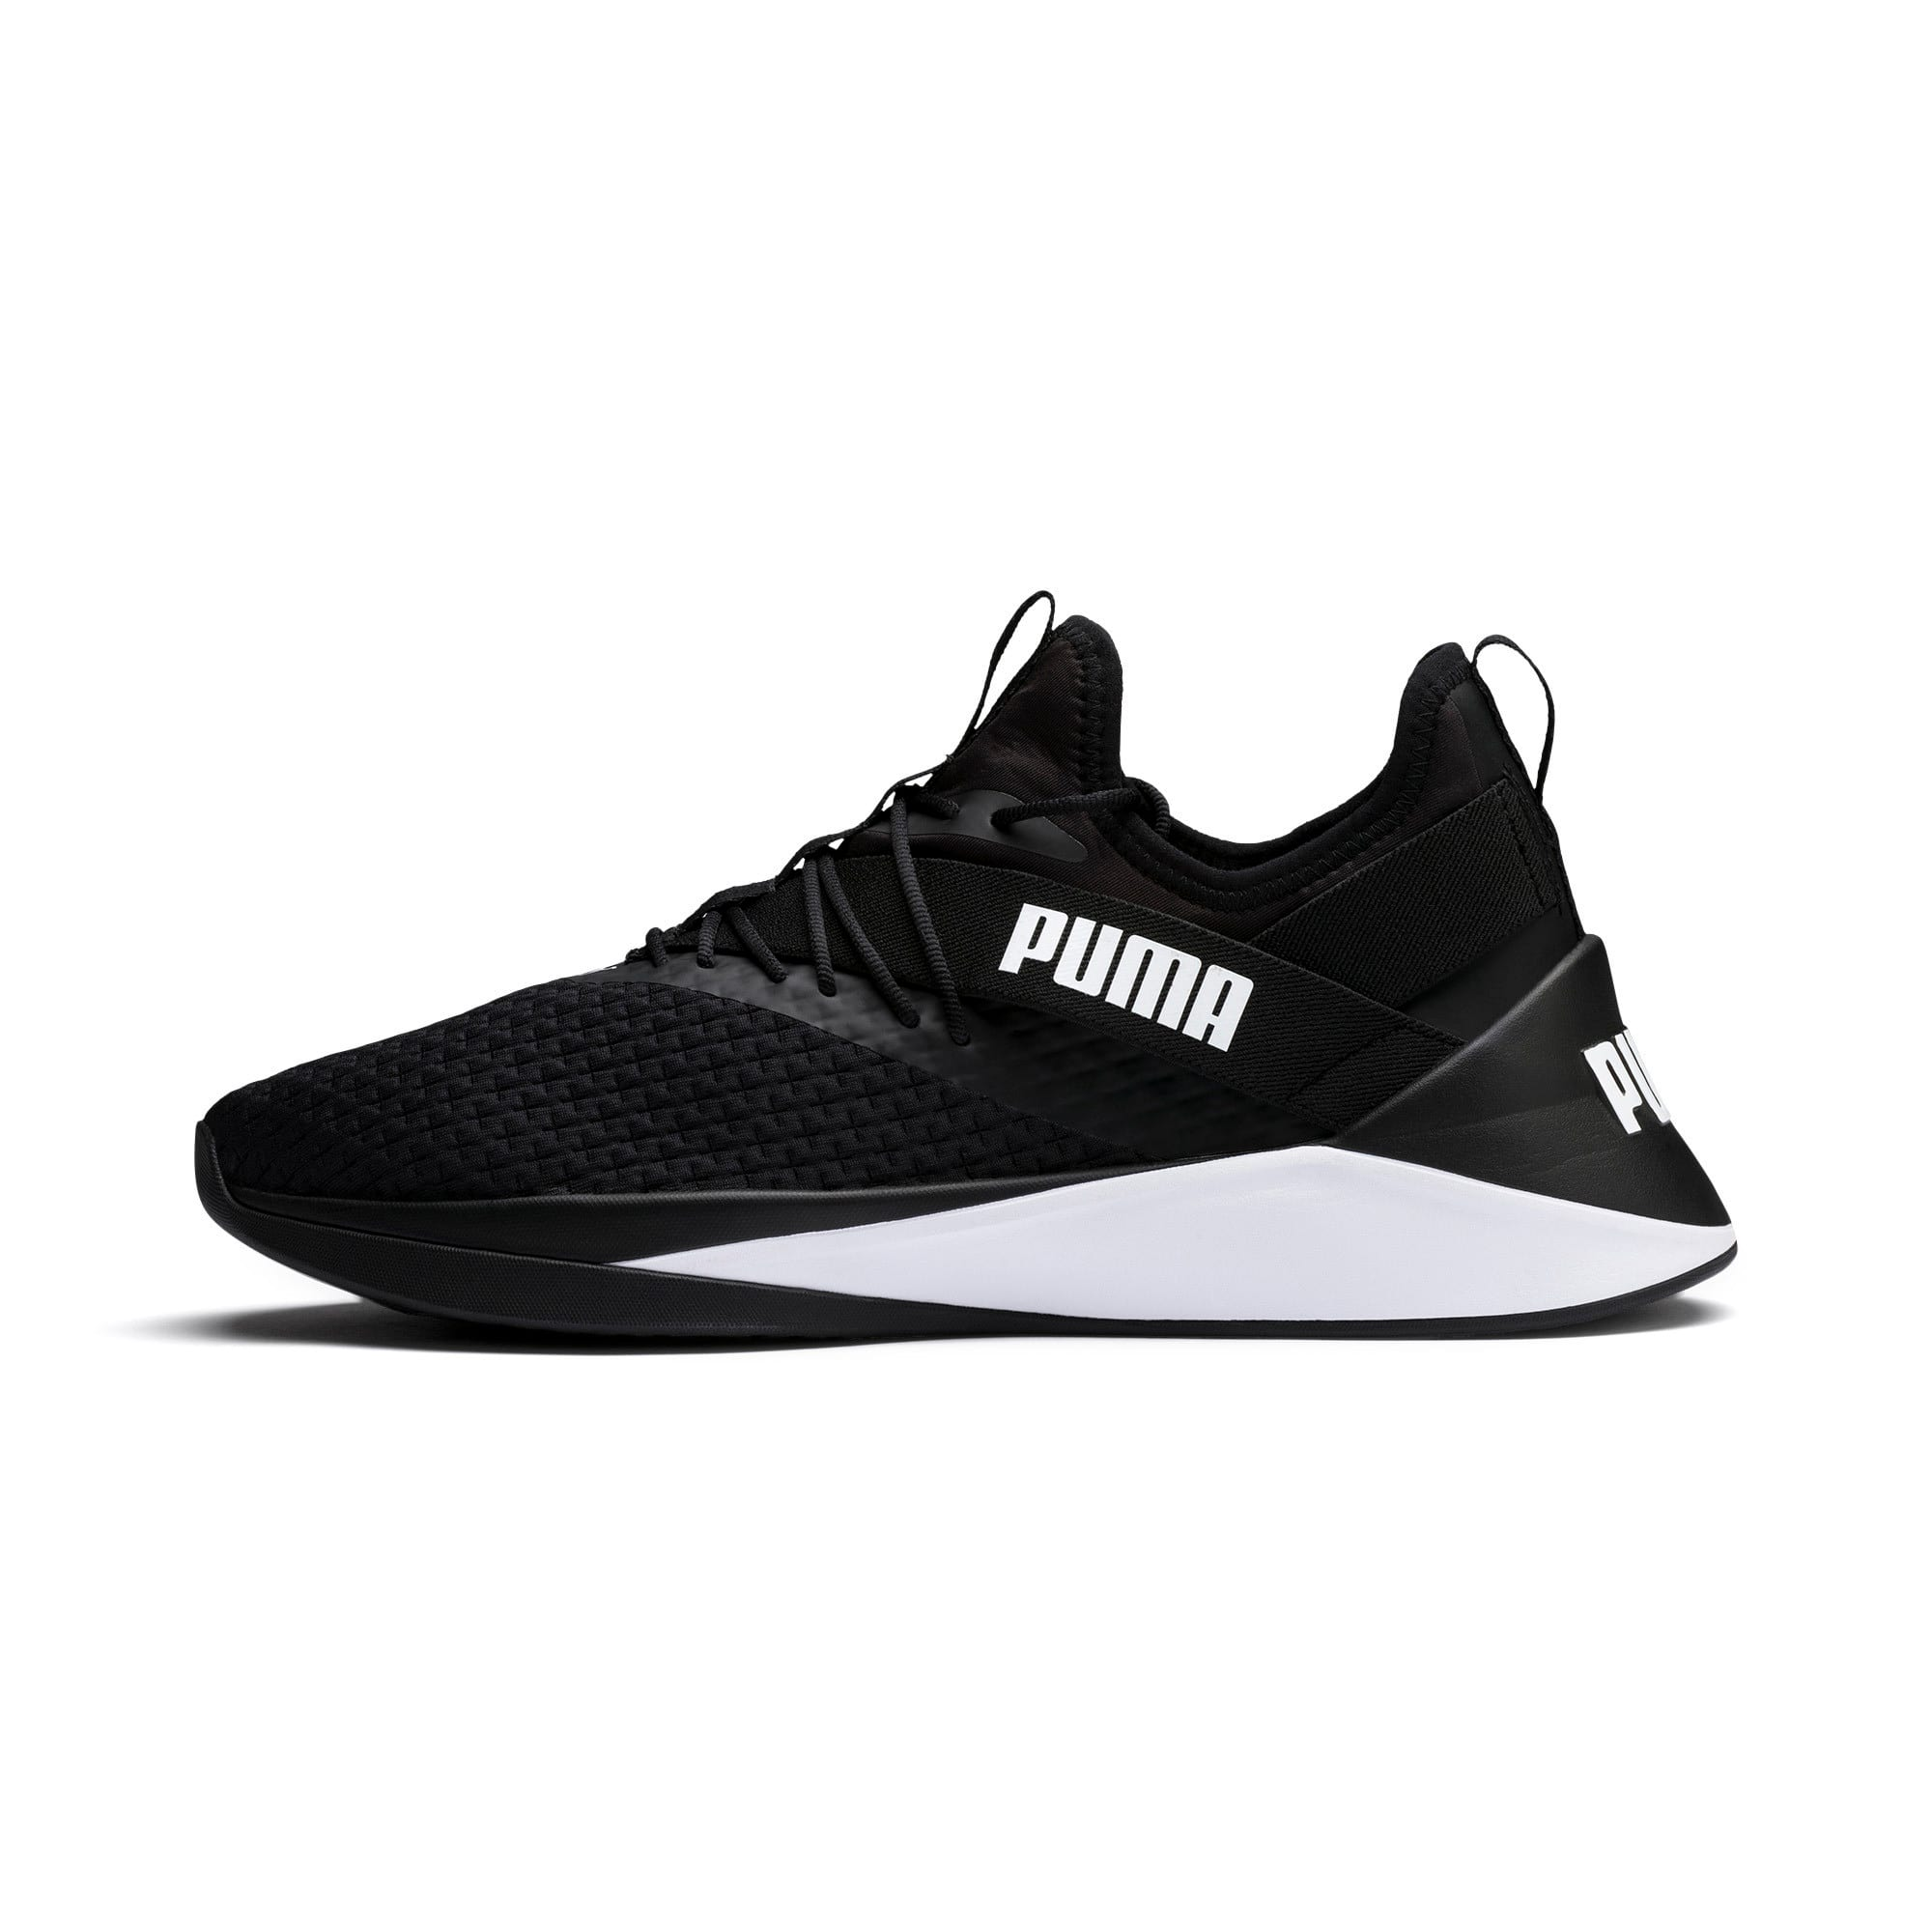 Thumbnail 1 of Jaab XT sneakers voor heren, Puma Black-Puma White, medium